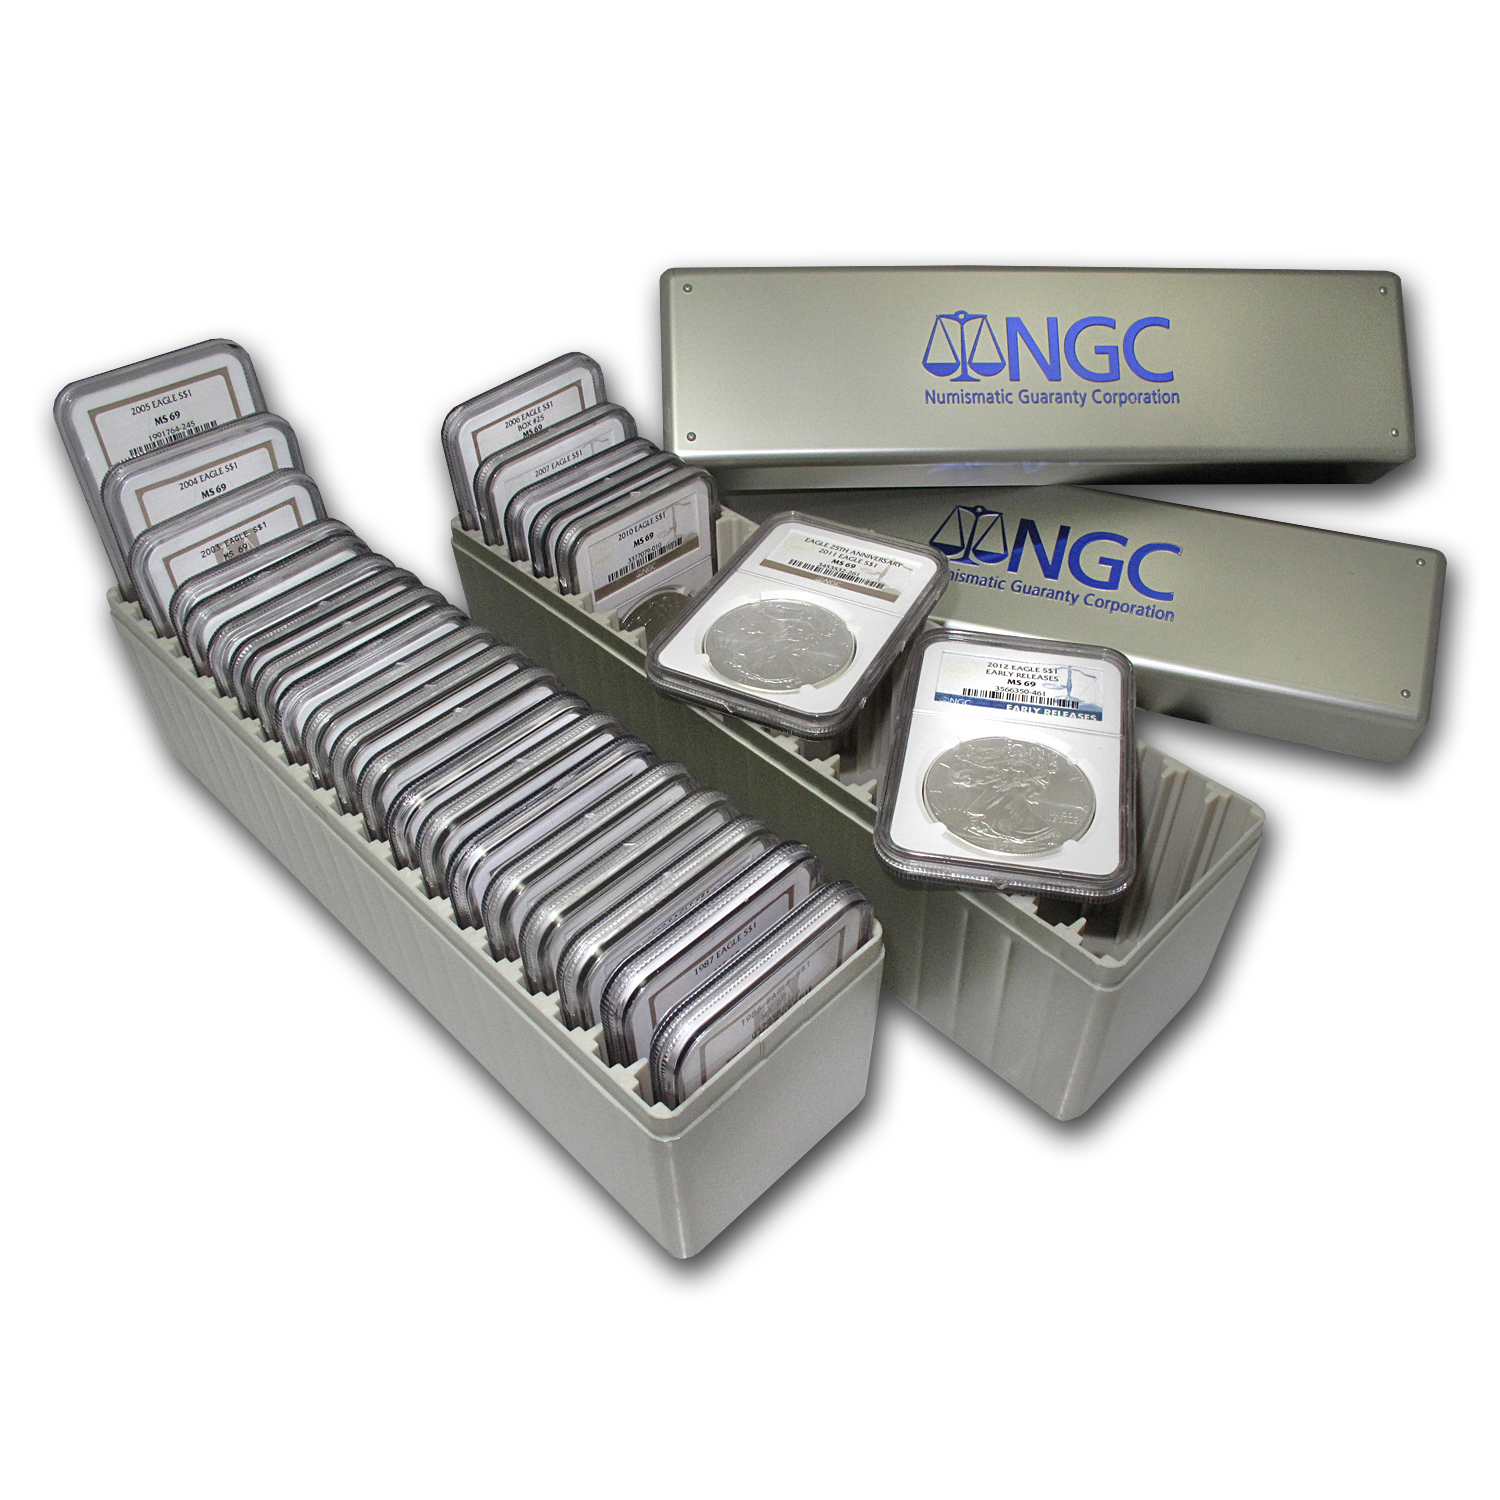 1986-2014 29-Coin Silver Eagle Set MS-69 NGC (2 NGC Boxes)